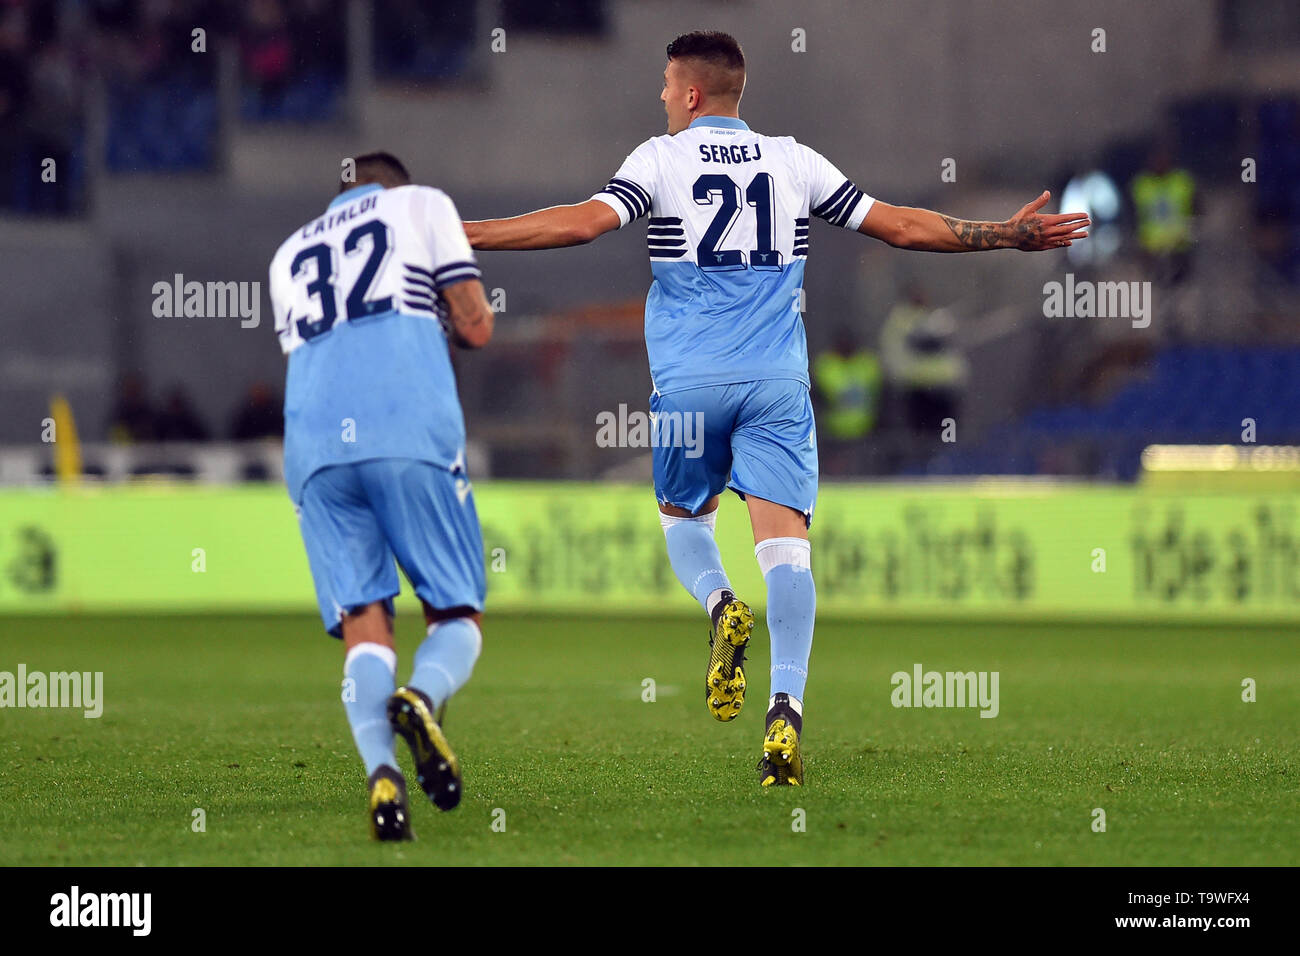 Rome, Italy. 21st May, 2019. Serie A Lazio vs Bologna Stadio Olimpico.Rome 20-05-2019 In the picture Sergej Milinkovic Savic celebrates after scoring the goal on a free kick Foto Foto01 Credit: Independent Photo Agency/Alamy Live News - Stock Image